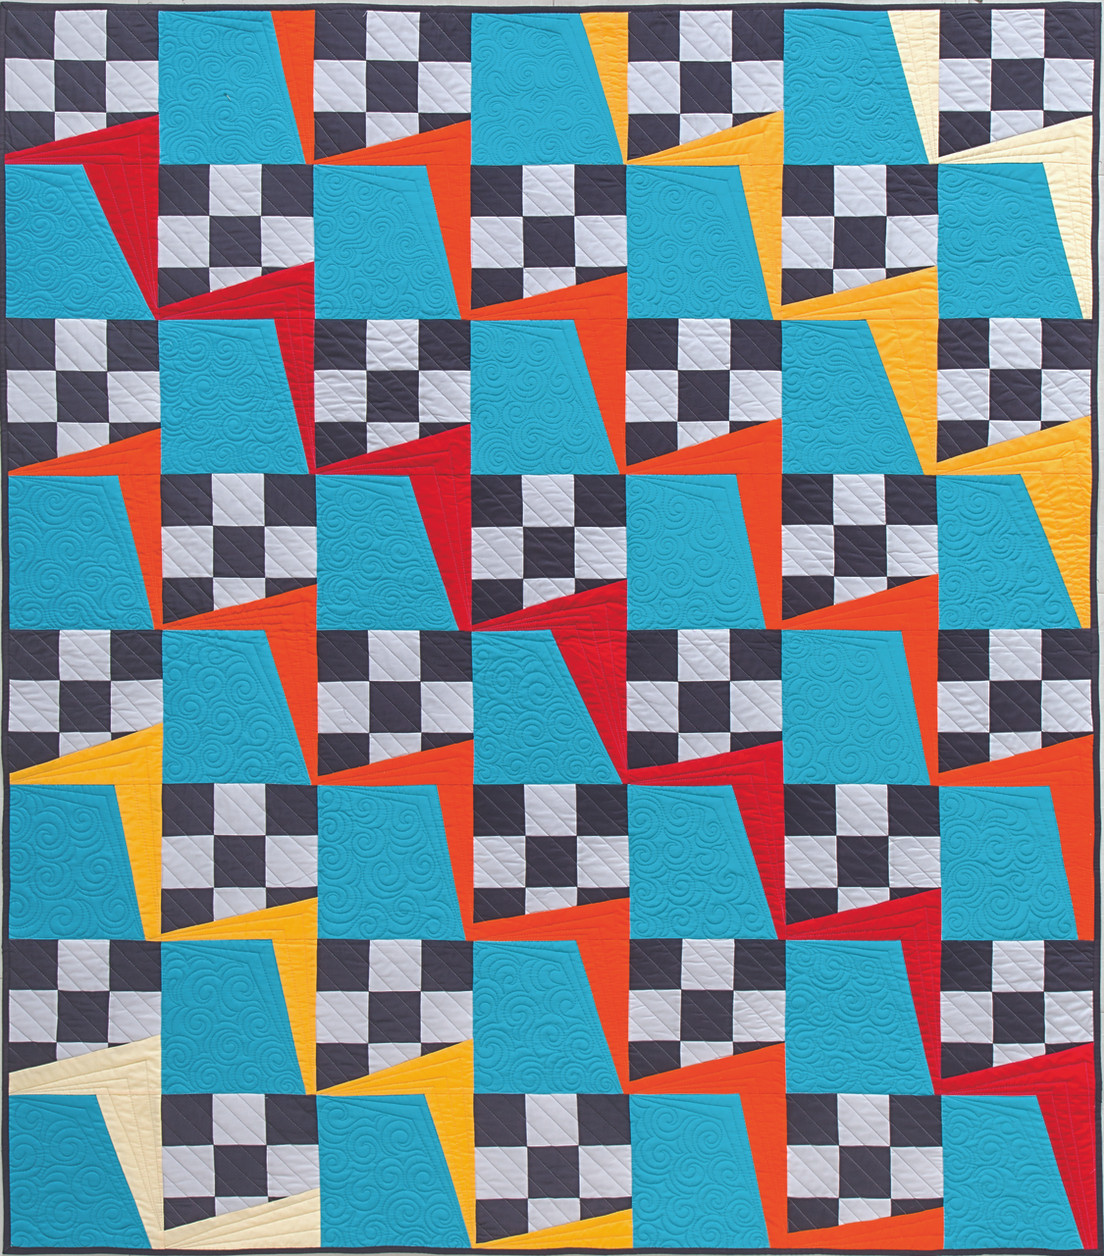 Diverse projects inspired by easy-to-piece nine-patches from the dynamic team of popular pattern designer Jenifer Dick and expert quilter Angela Walters.